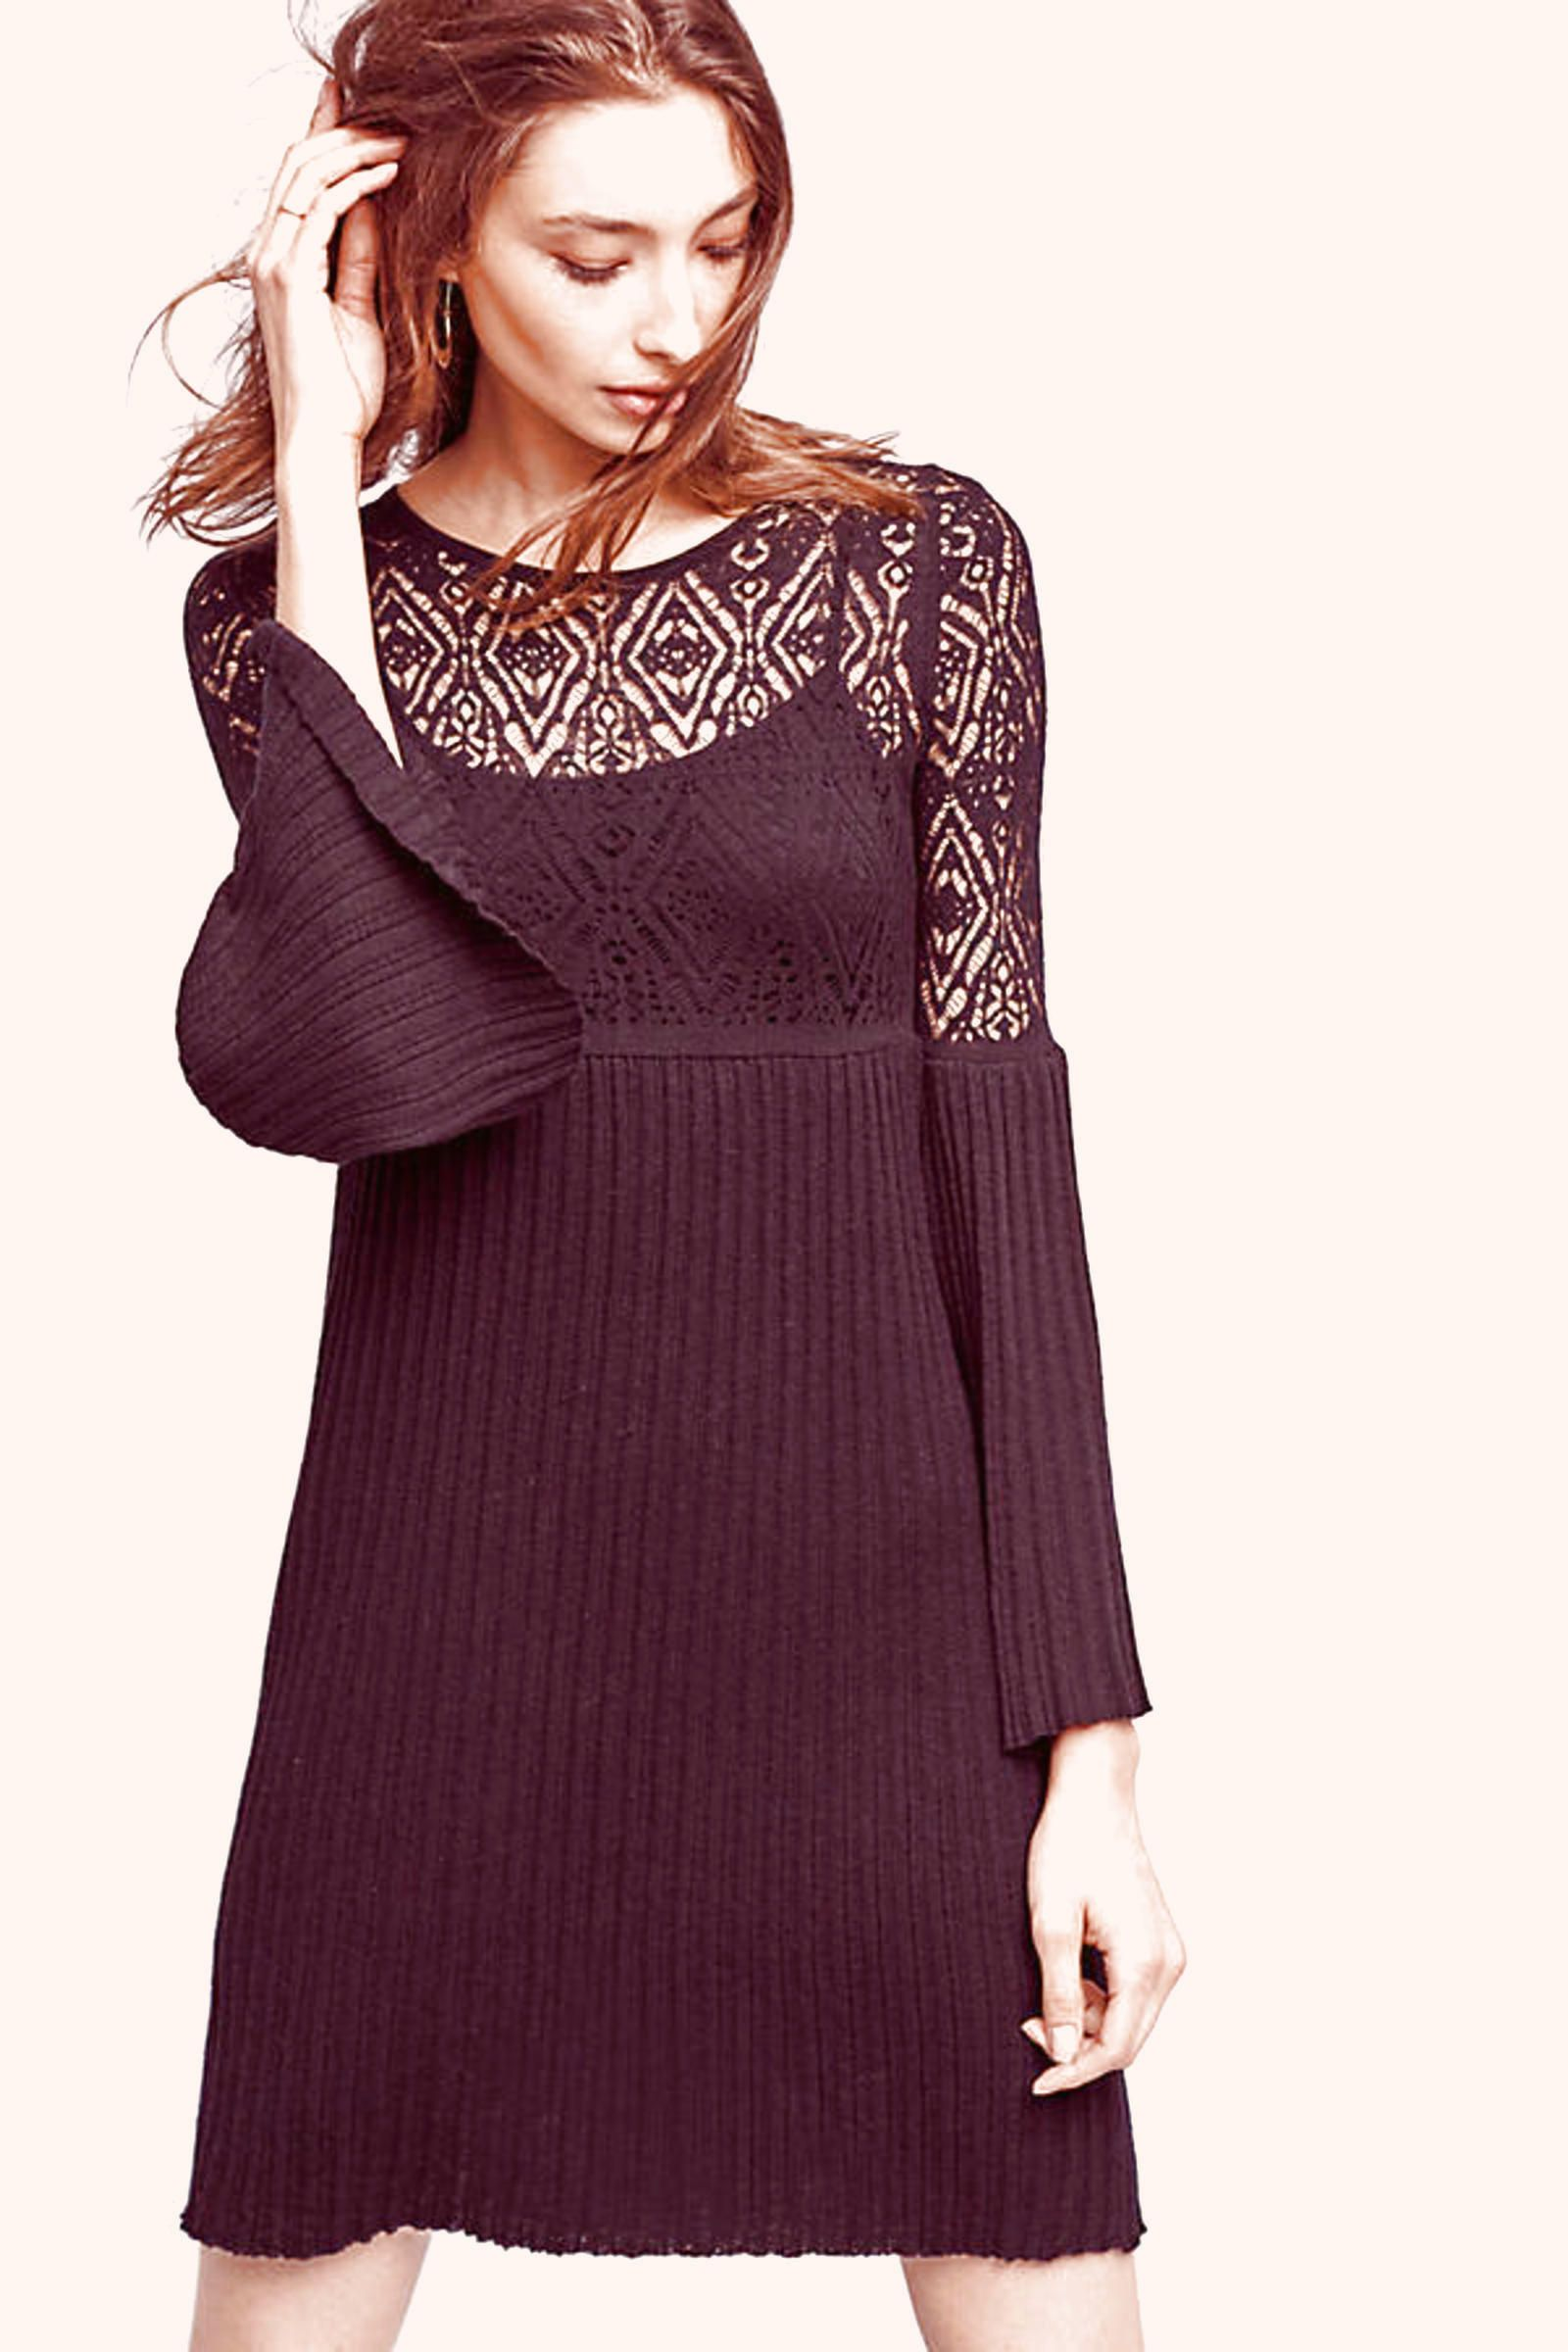 XL Sweater Dresses